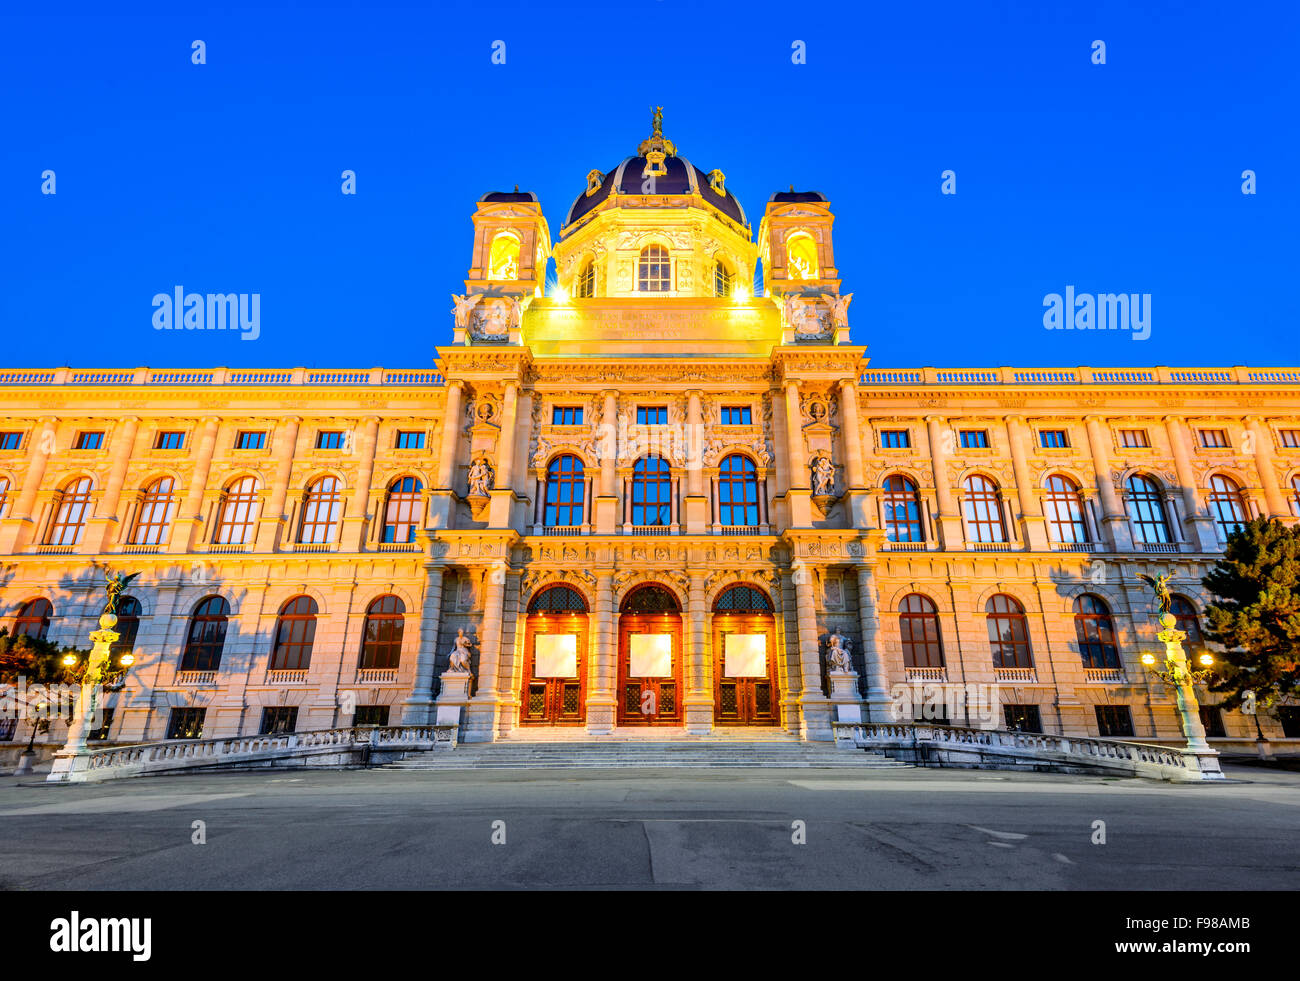 Vienna, Austria. Beautiful view of famous Naturhistorisches Museum (Natural History Museum) with park Maria-Theresien - Stock Image